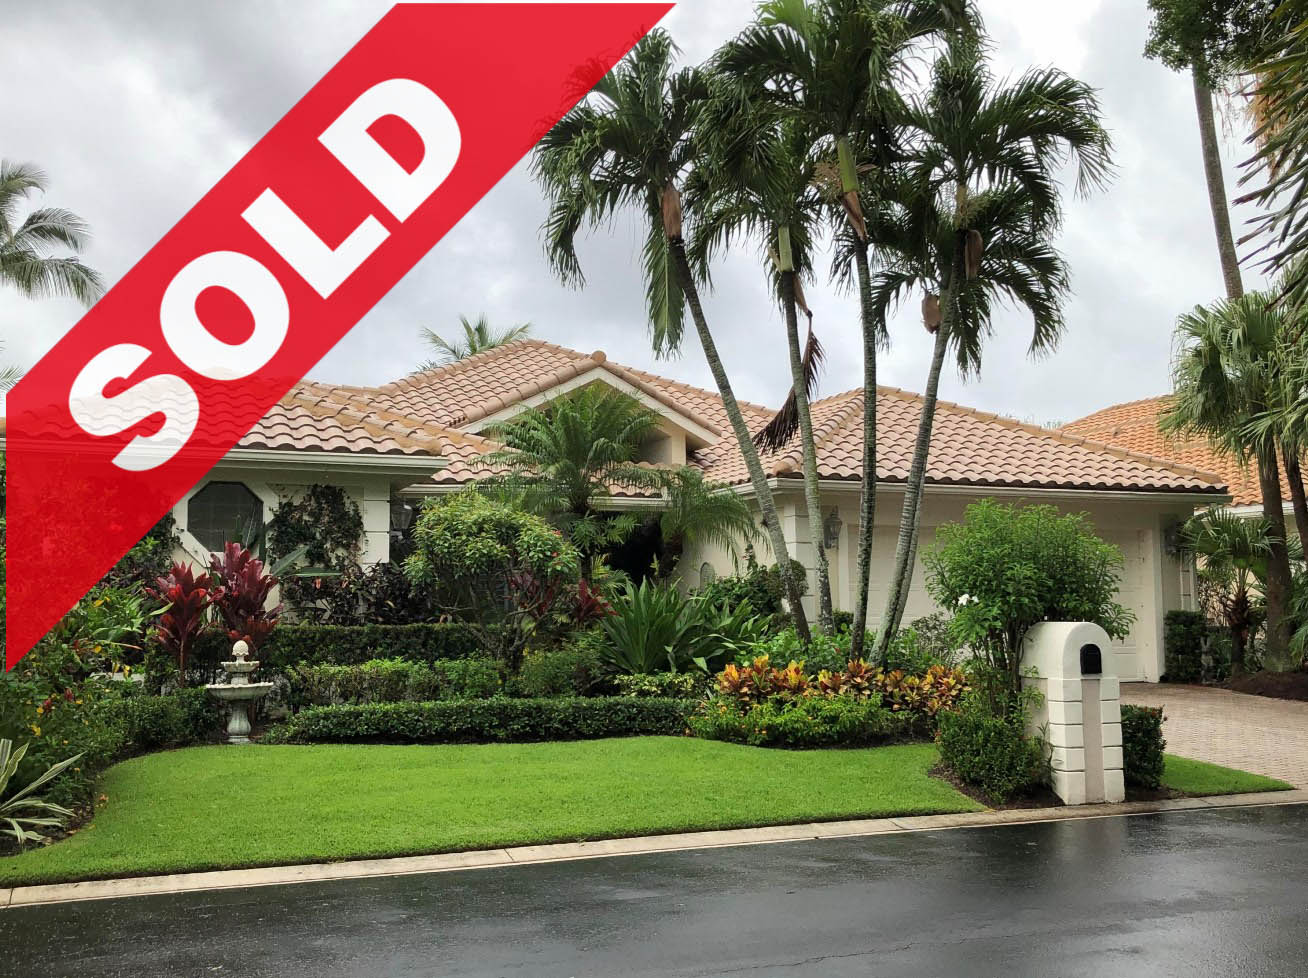 SOLD! Jonathan's Landing Southern Cay Lakefront Home For Sale - 3440 Southern Cay Drive, Jupiter, FL 33477